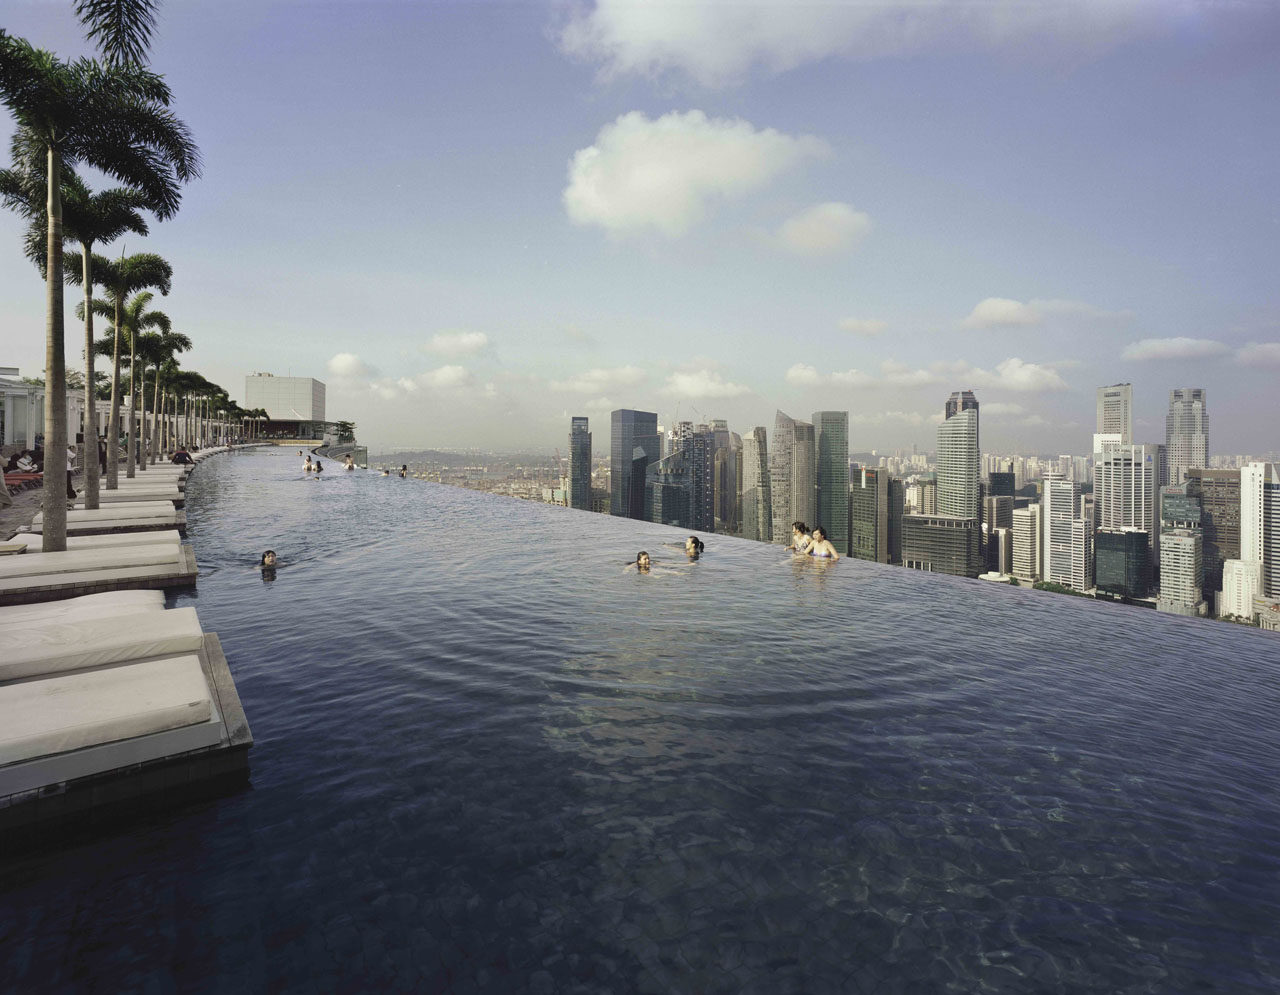 marina bay sands skypark an iconic singapore destination buildipedia. Black Bedroom Furniture Sets. Home Design Ideas